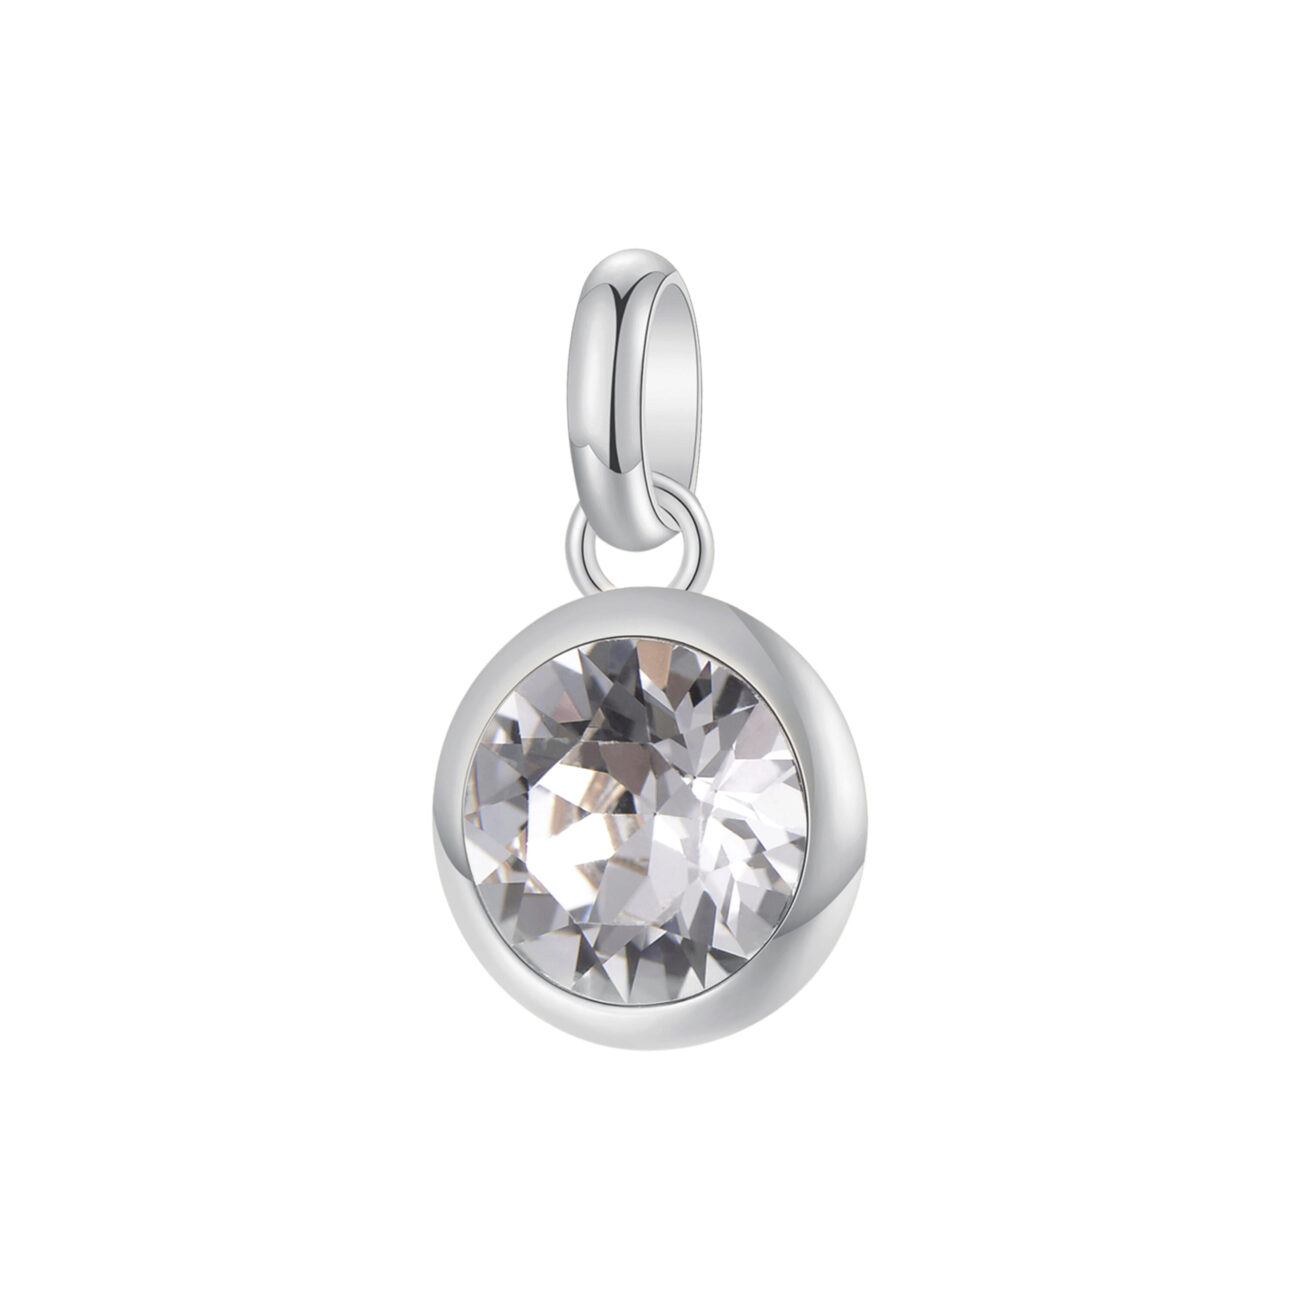 316L stainless steel beads and white Swarovski©crystal